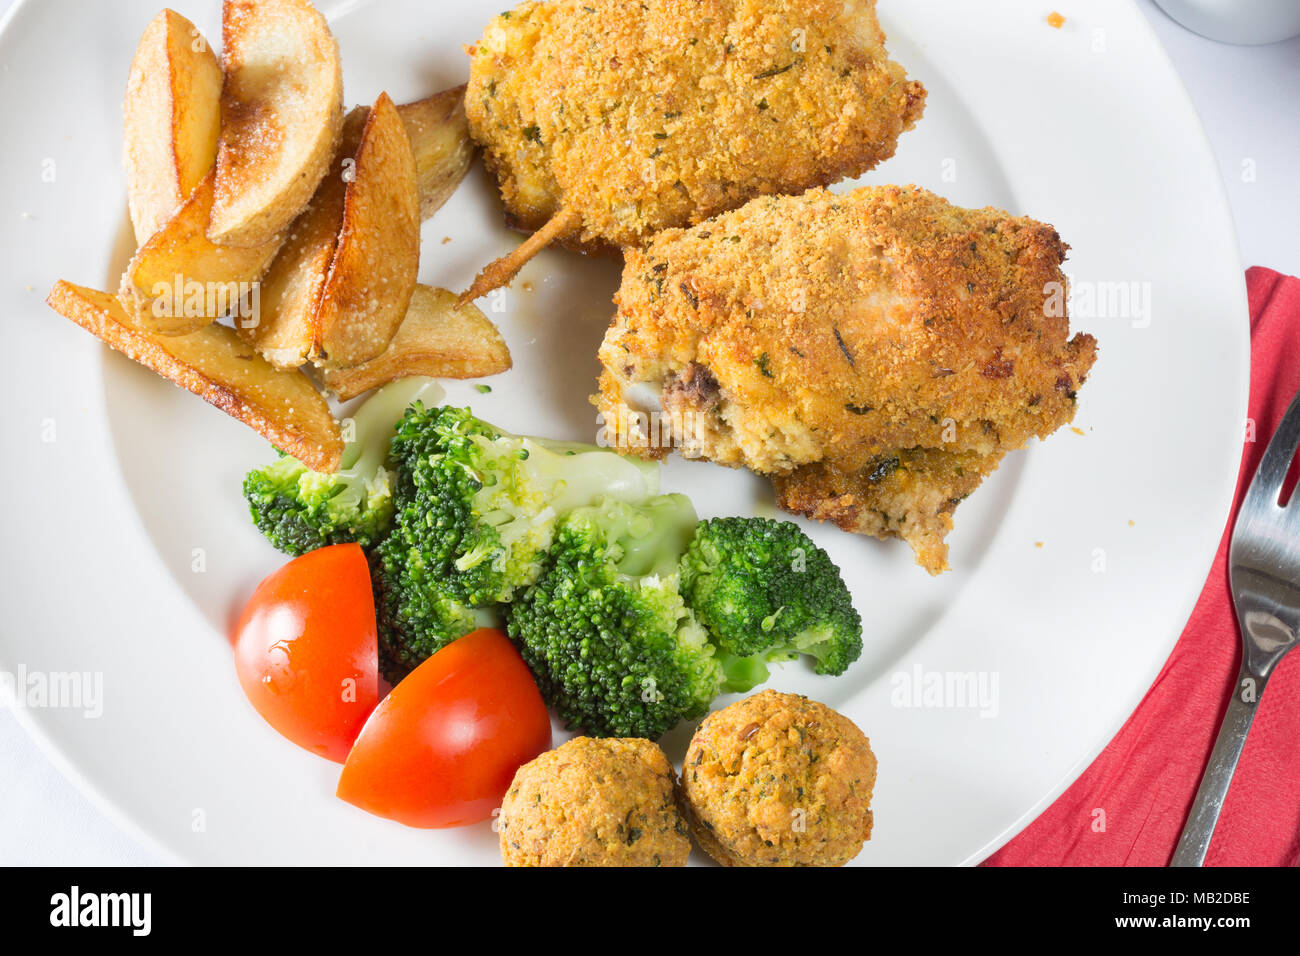 An English pub/restaurant dish of Golden fried breaded Chicken thighs served with potato wedges, Broccoli and stuffing balls - Stock Image